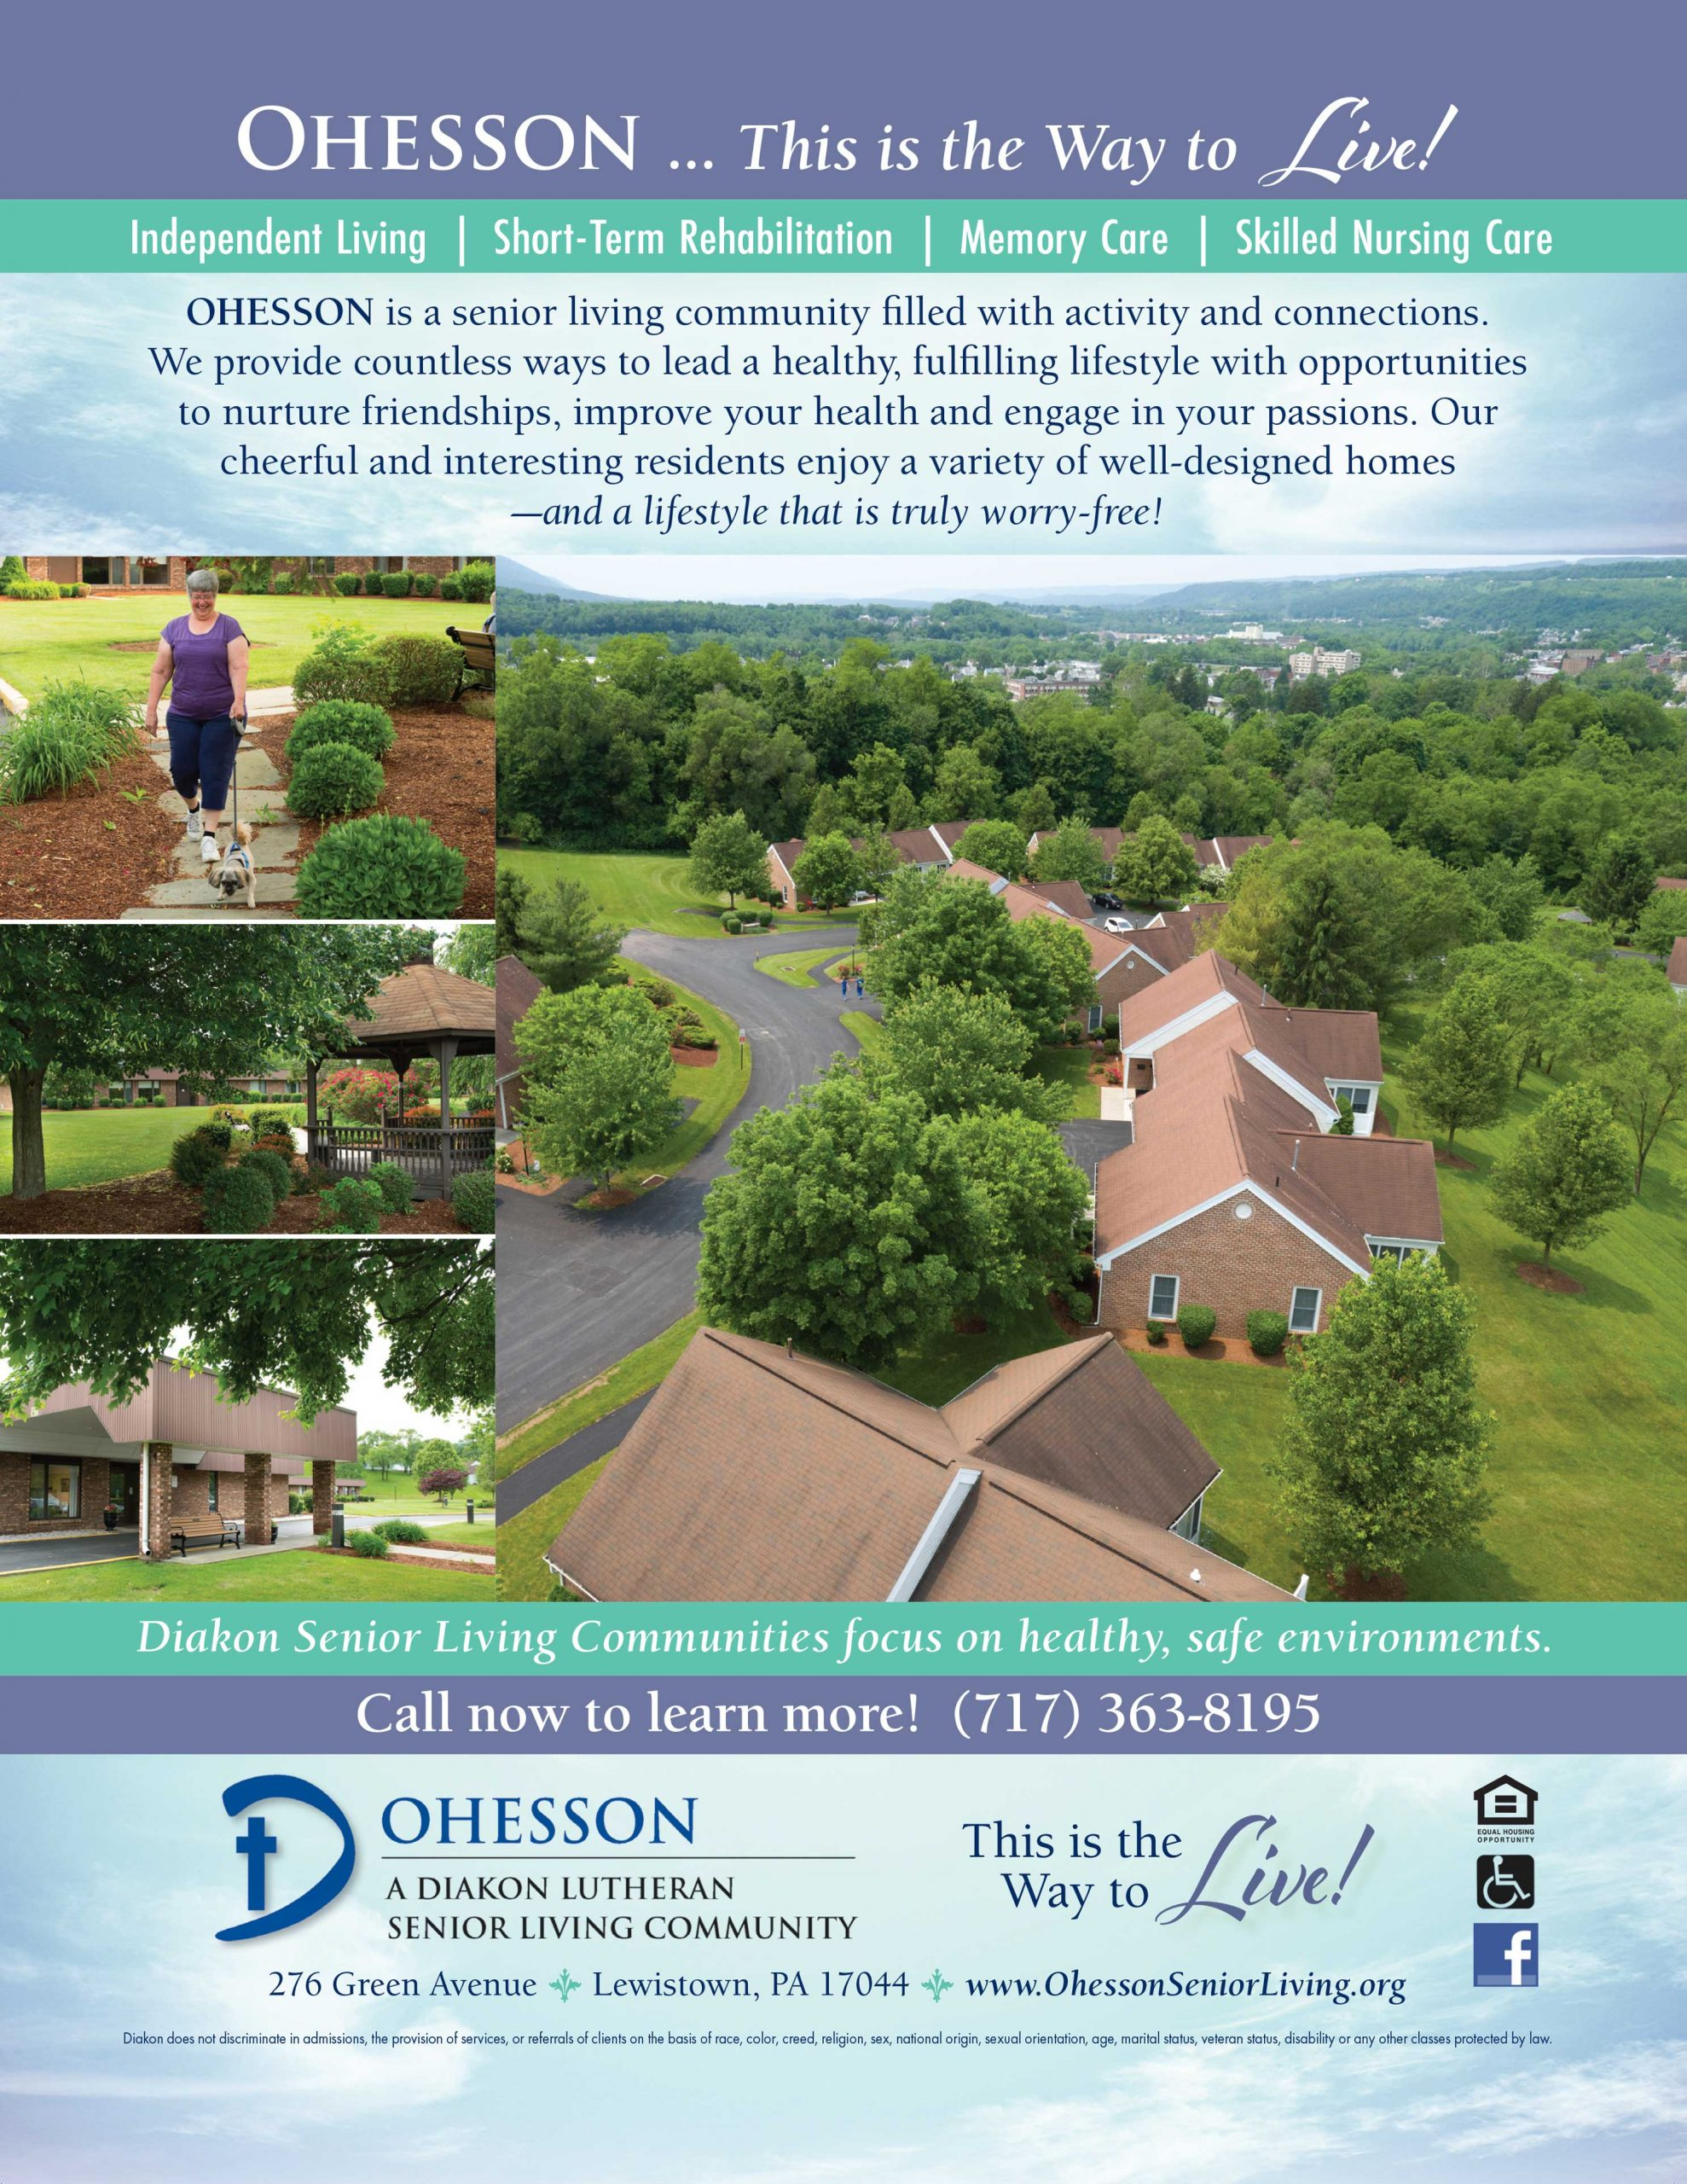 "<center>Ohesson Manor Nursing Home | <b><a href=""https://www.diakonseniorliving.org/communities/ohesson"" target=""_blank"" rel=""noopener noreferrer"">CLICK HERE to view the website</a></b></center>"